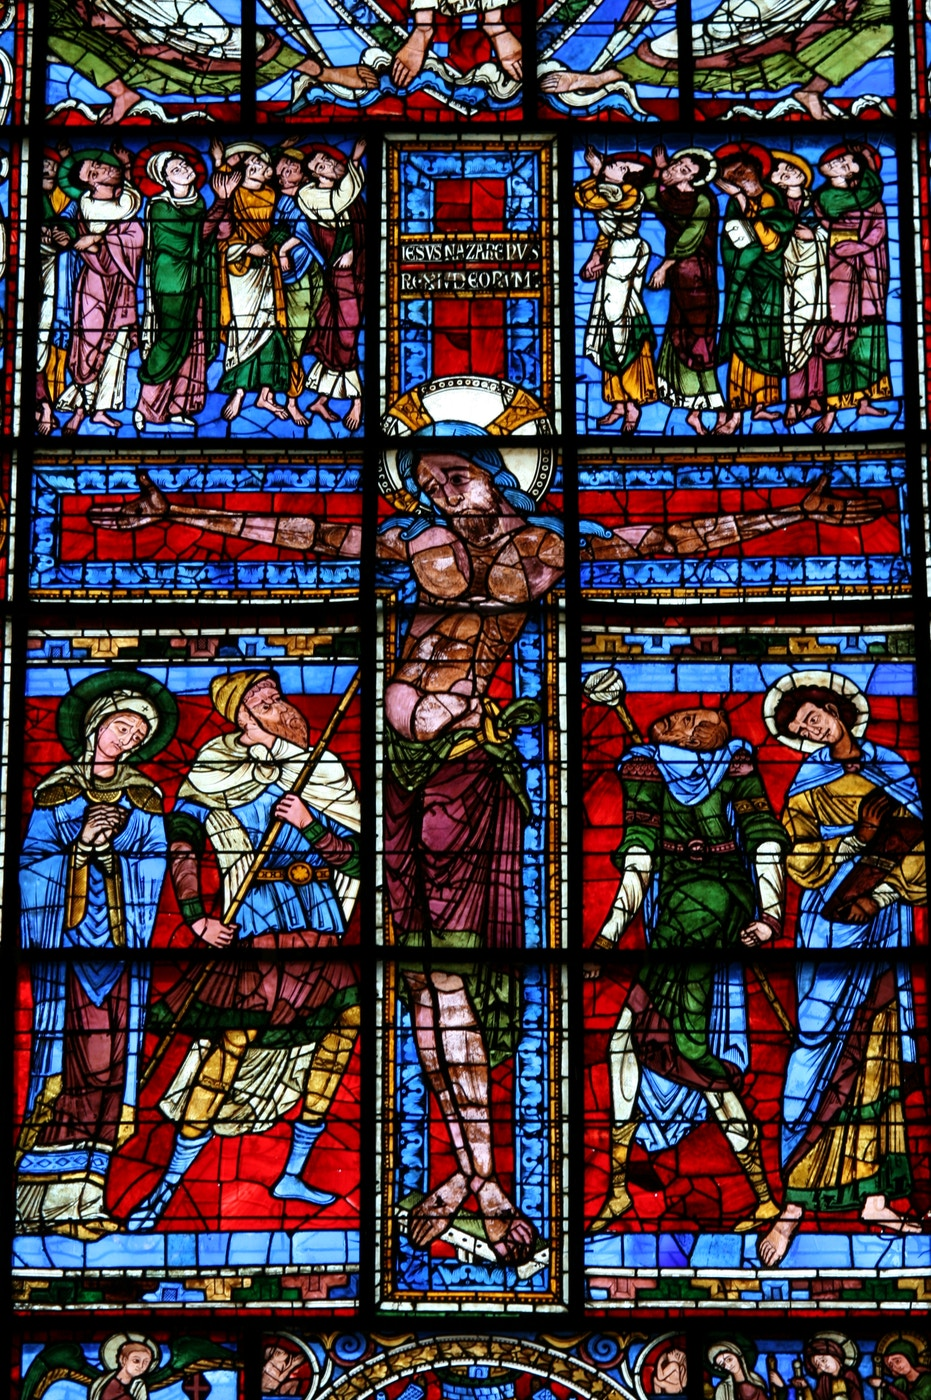 East Window: Crucifixion